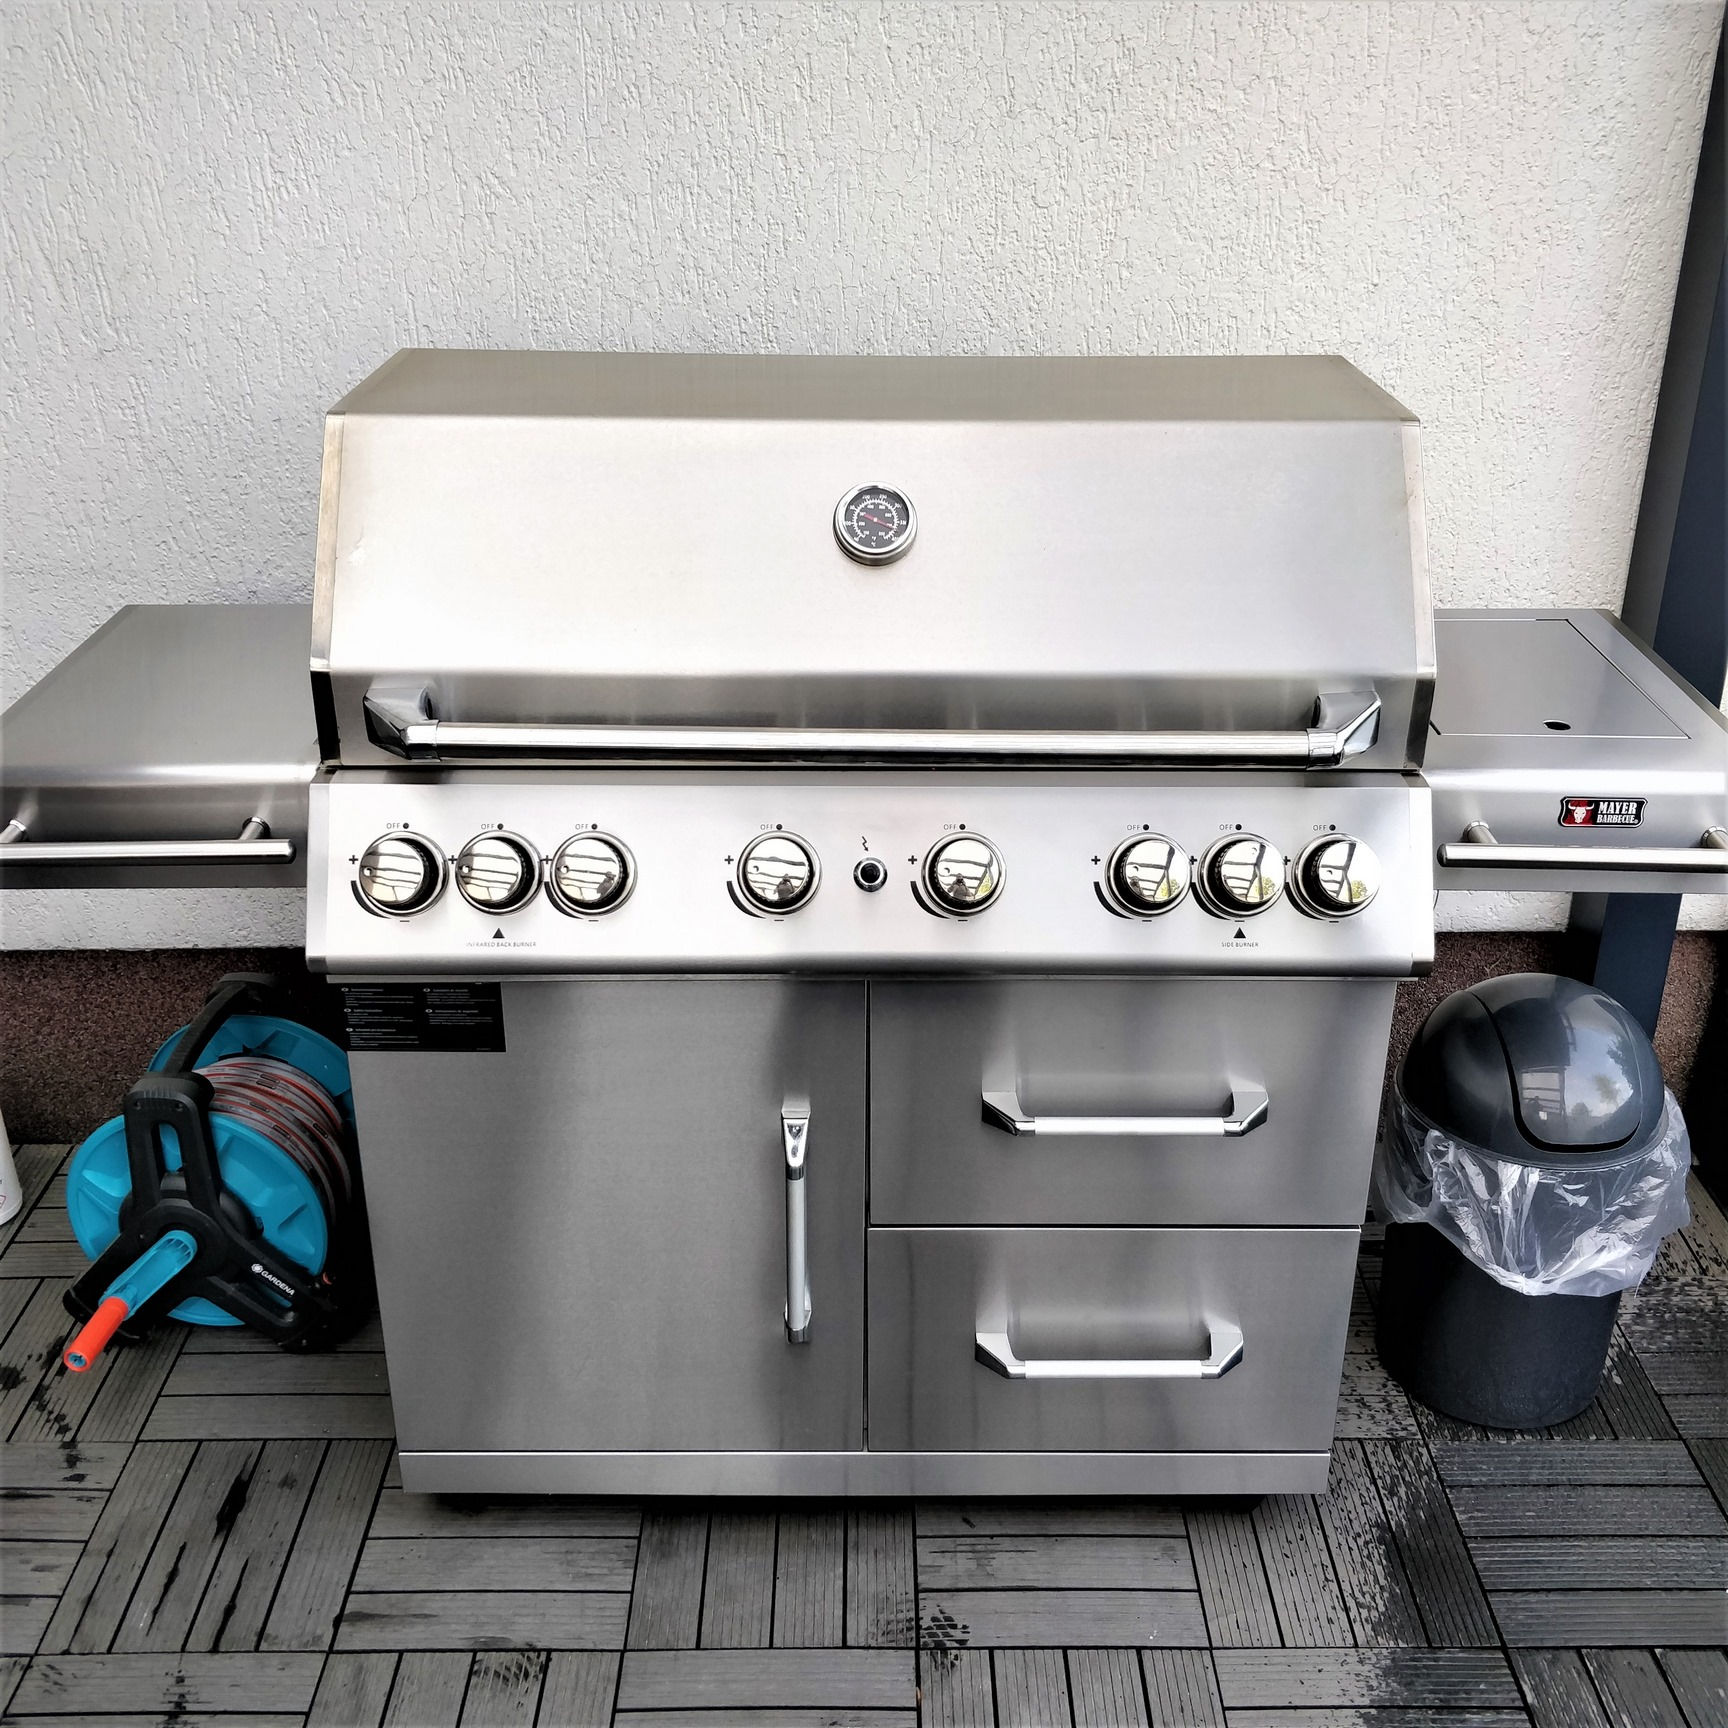 Zunda Outdoor Küche Das Monster Zunda Mgg362 Von Mayer Barbecue Hobby Griller De